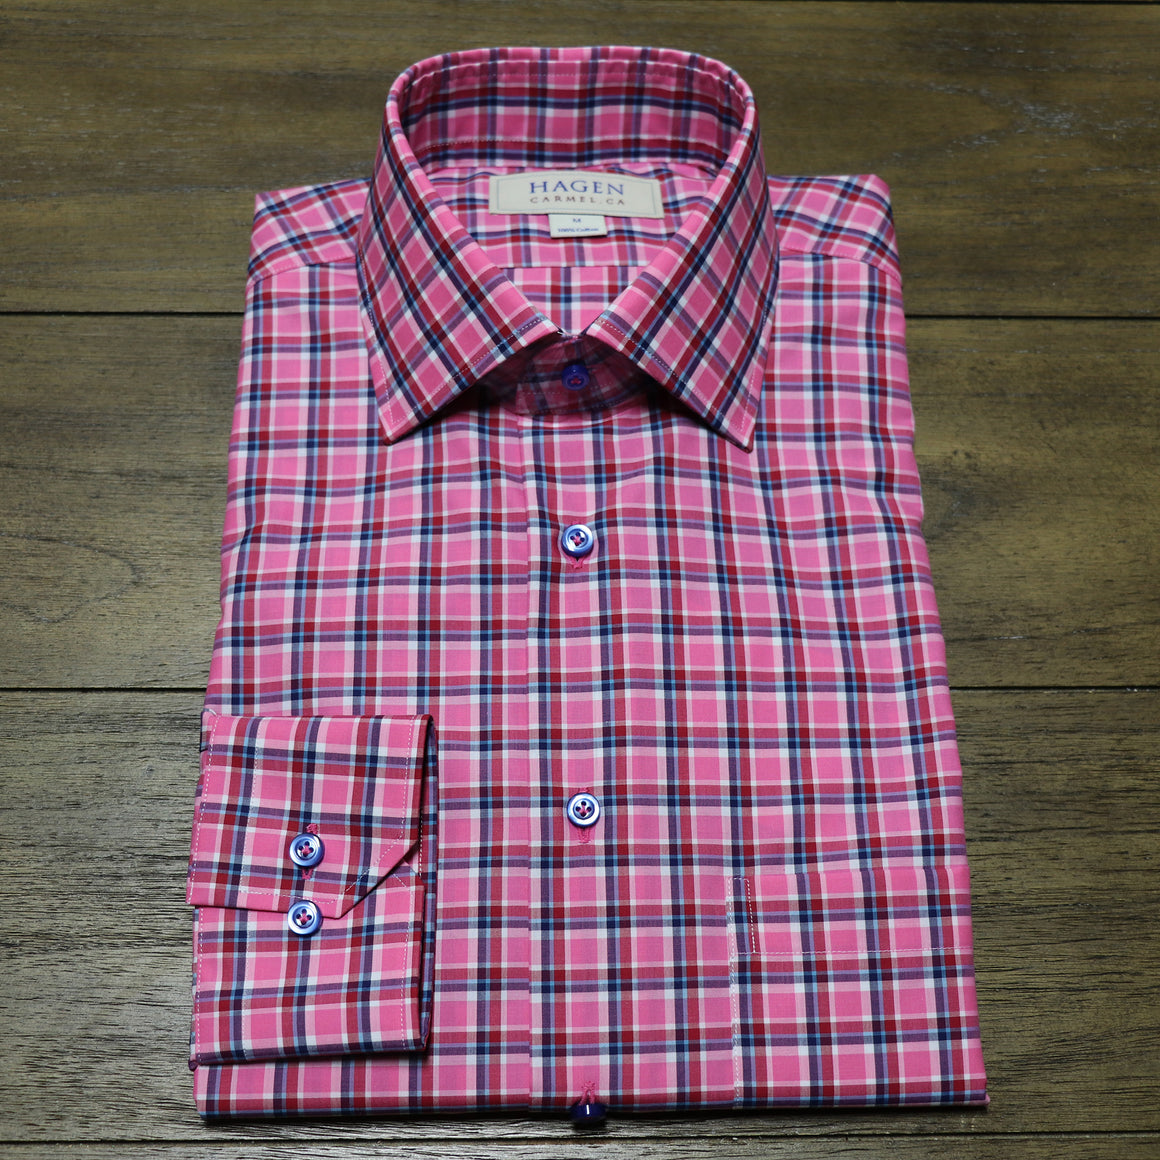 Hagen Pink Multi Plaid Sport Shirt